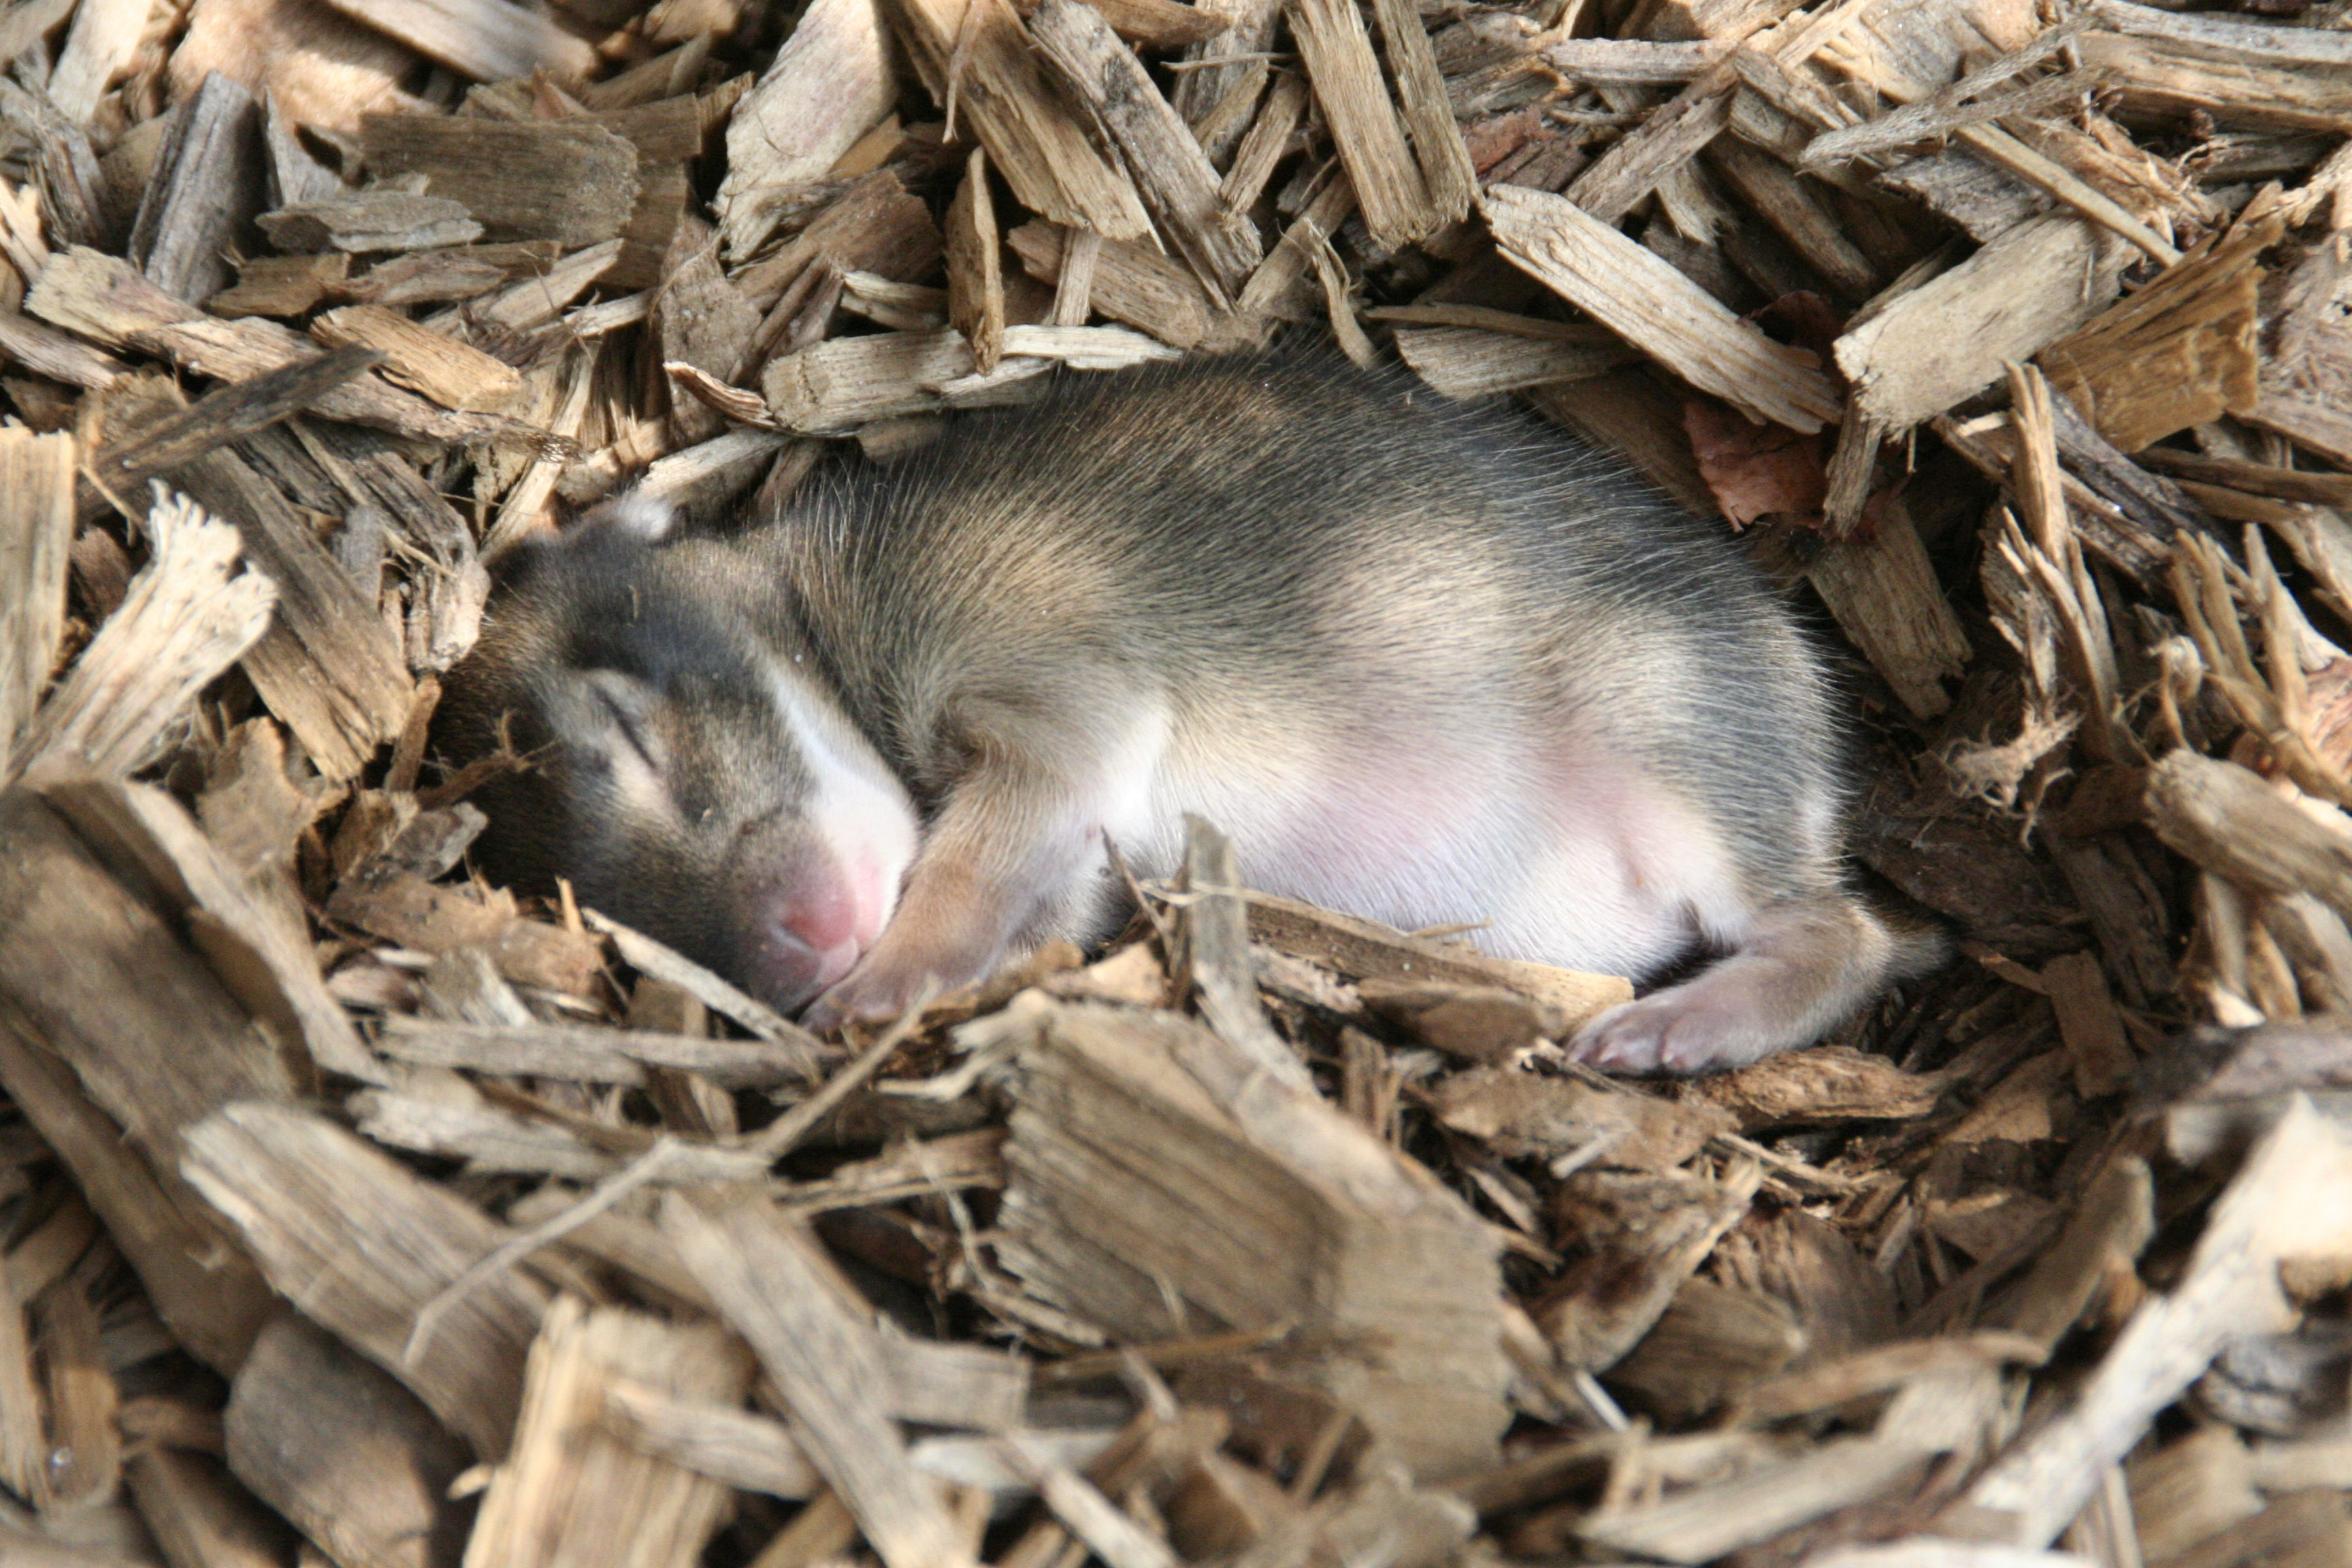 Baby rabbits found at the CanDo playground at Alapocas